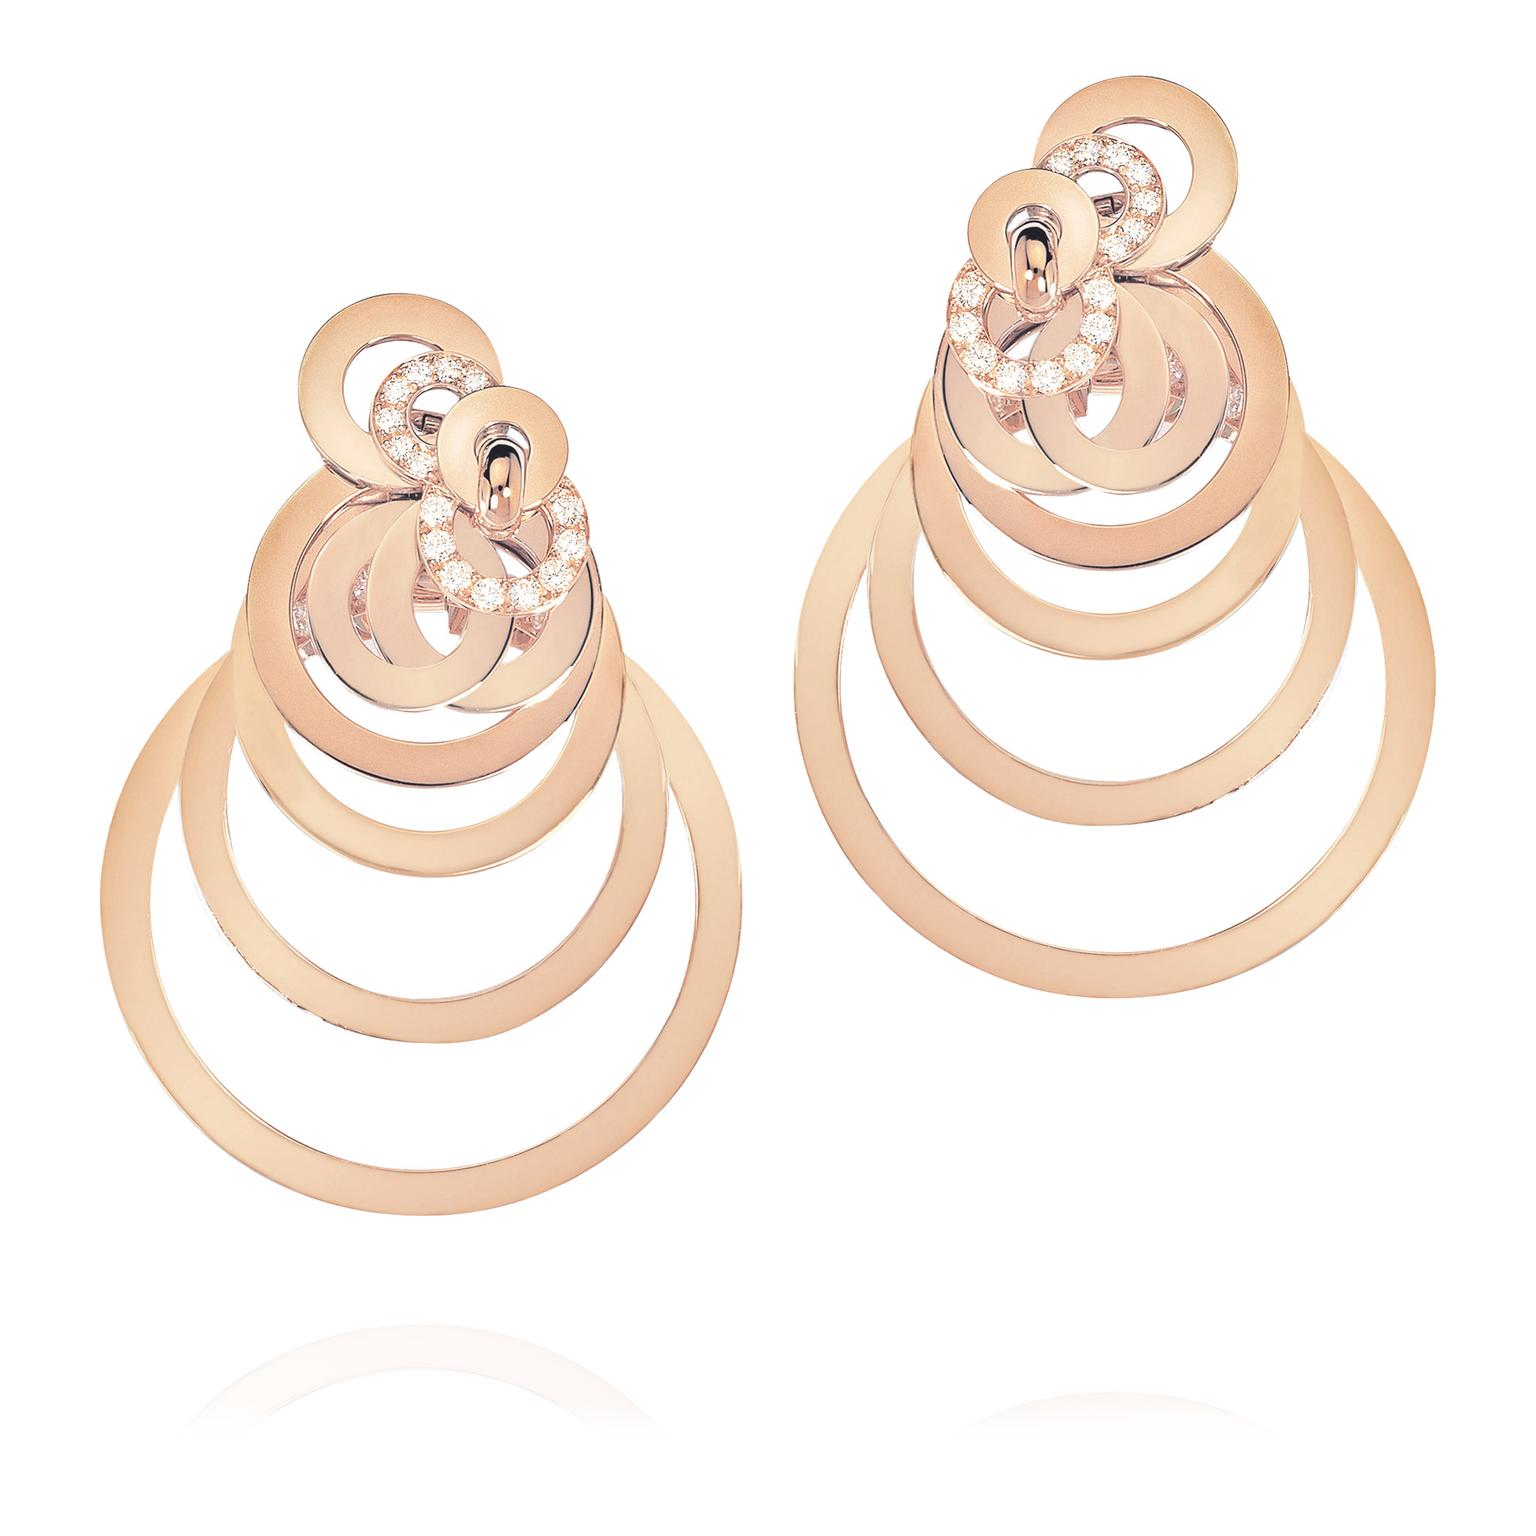 de-Gris-gypsy-earrings-zoom